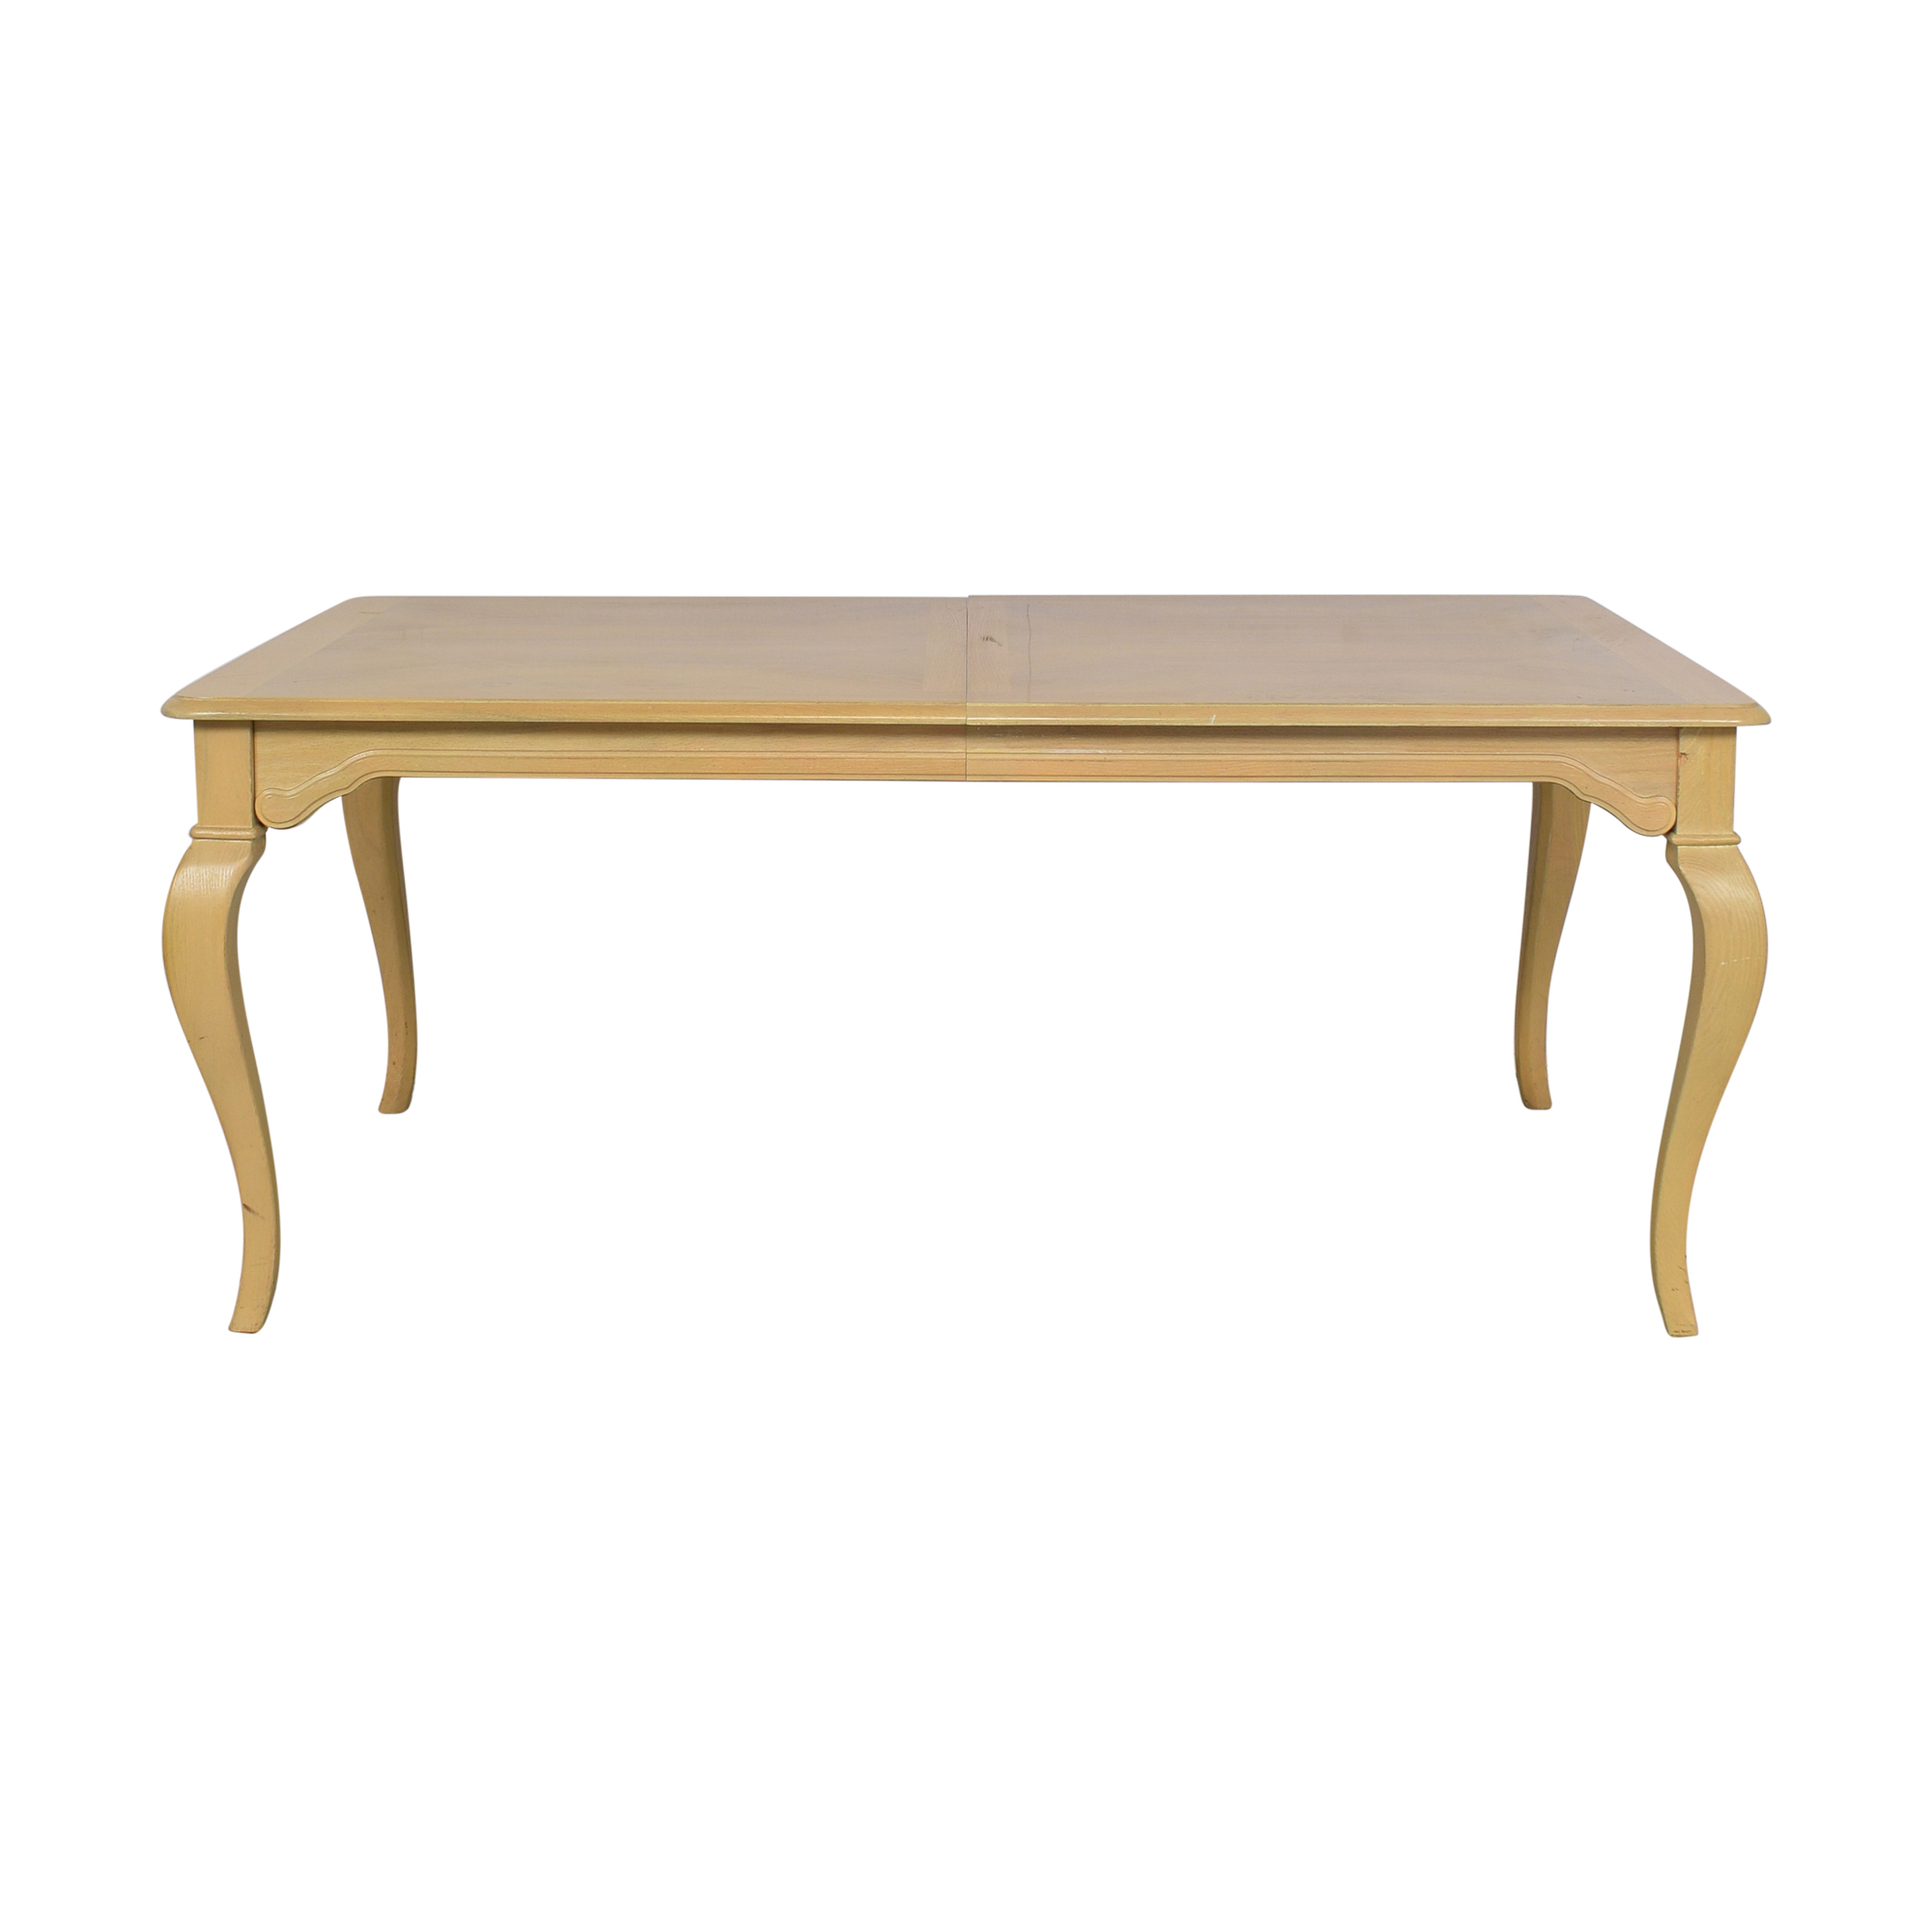 Thomasville Thomasville Extending Cabriole Dining Table